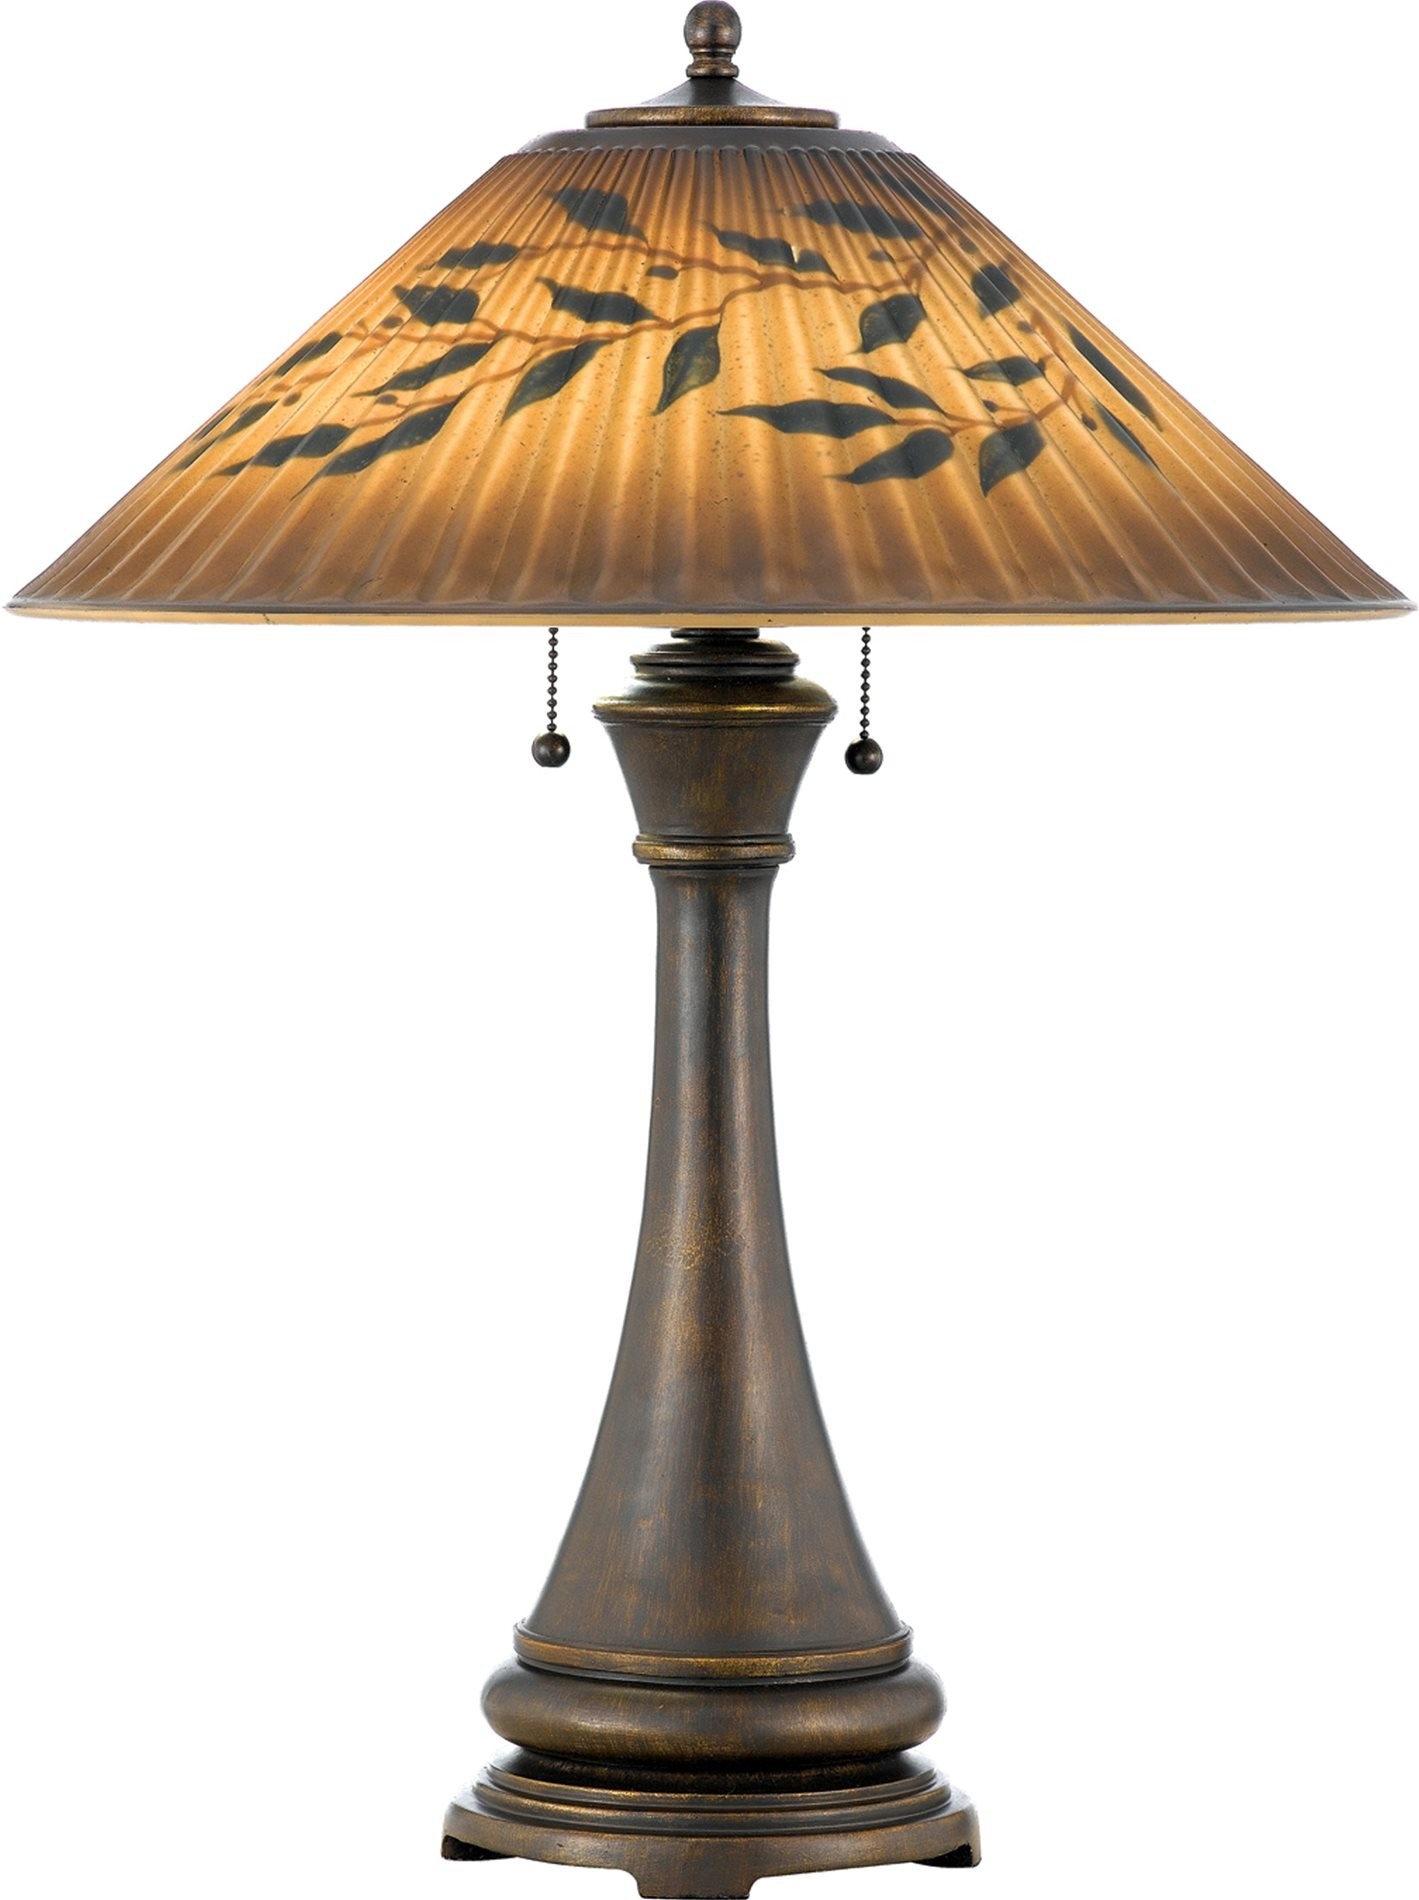 Quoizel Q490t Mountain Lodge Traditional Table Lamp Qz Q490t